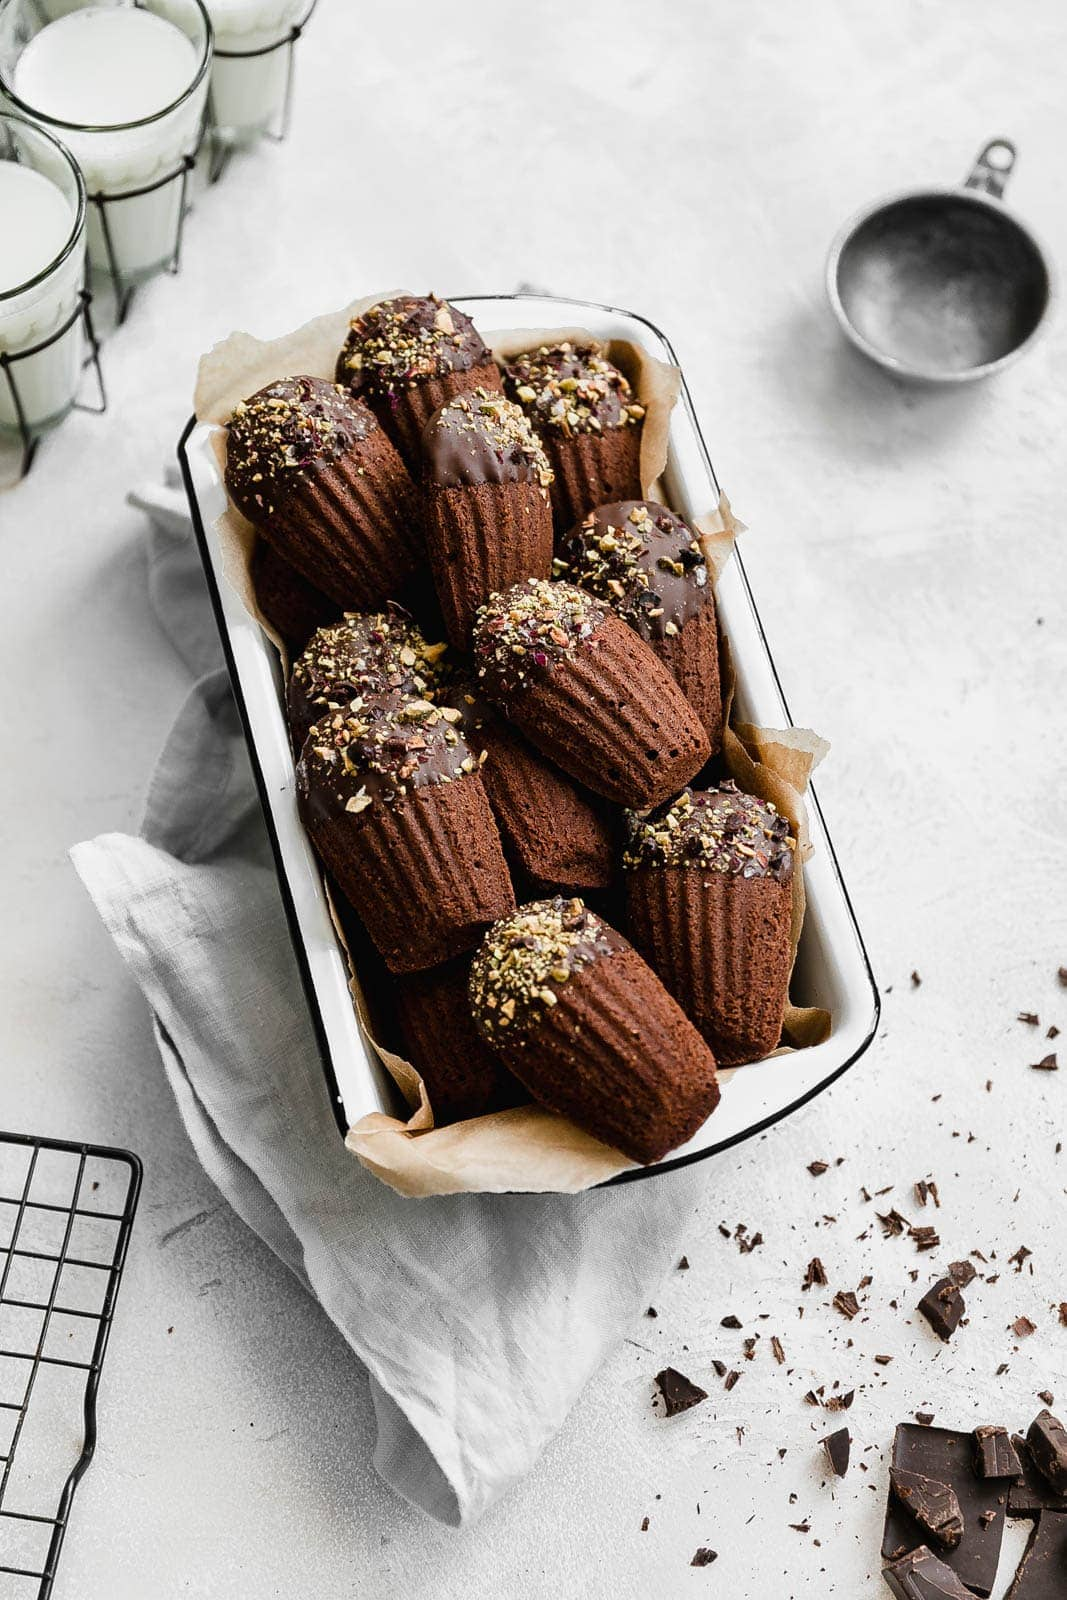 Simple and elegant, these chocolate dipped Chocolate Madeleines are almost too pretty to eat! But only almost, because they're also too good NOT to eat :)